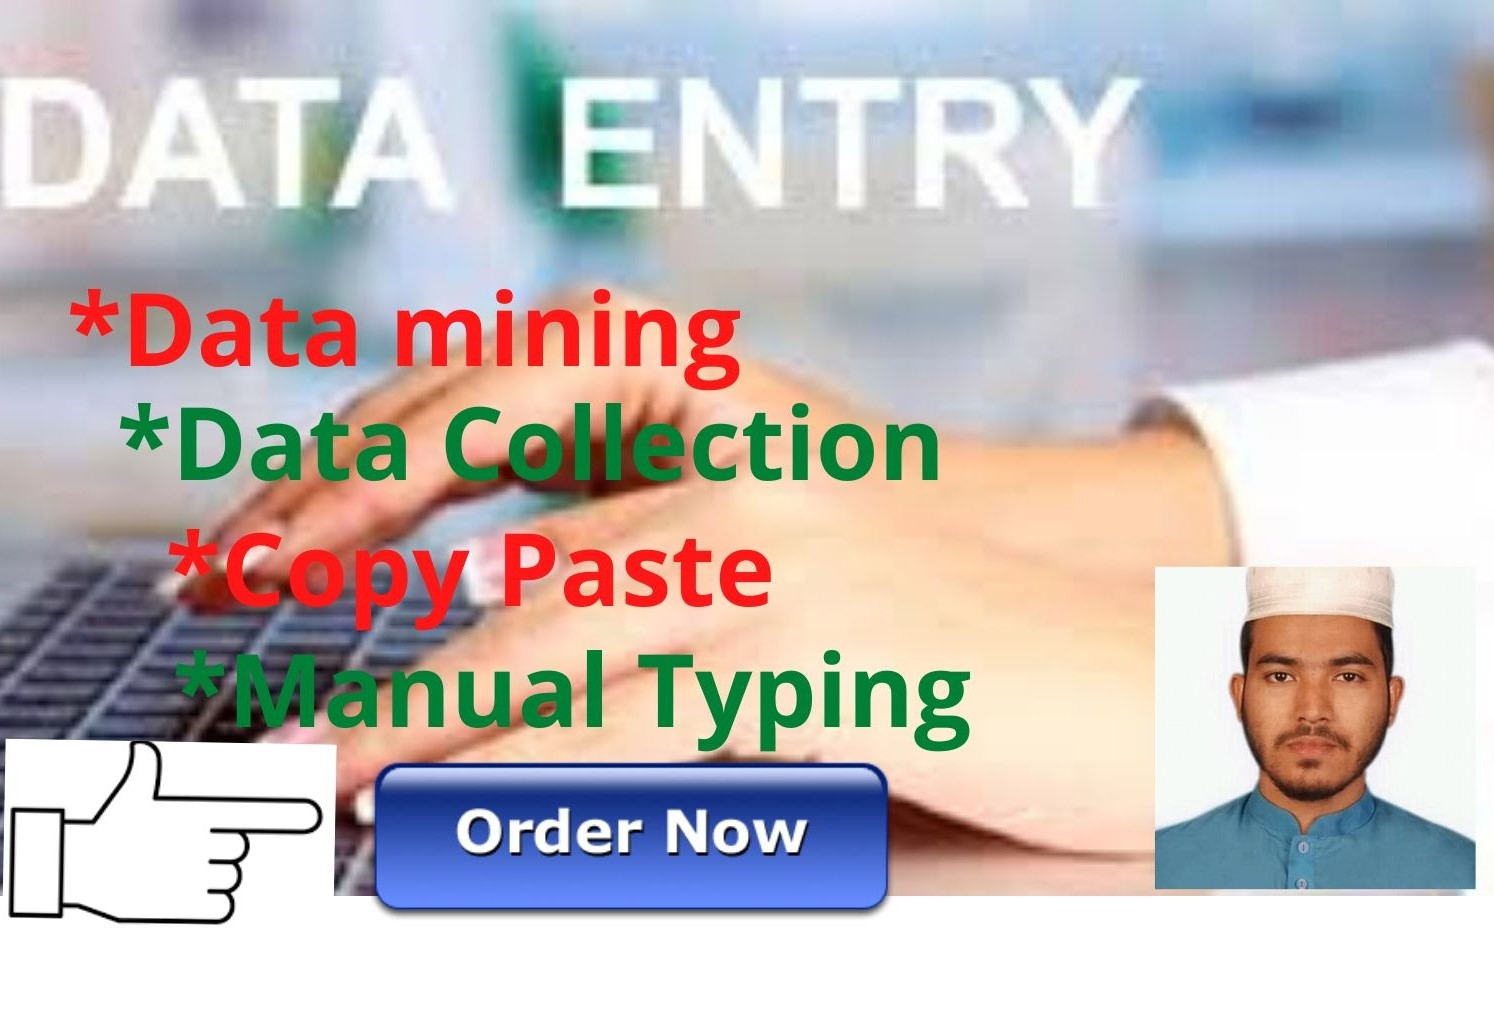 i will any data entry,  data mining,  copy paste, image to excel,  online data entry.